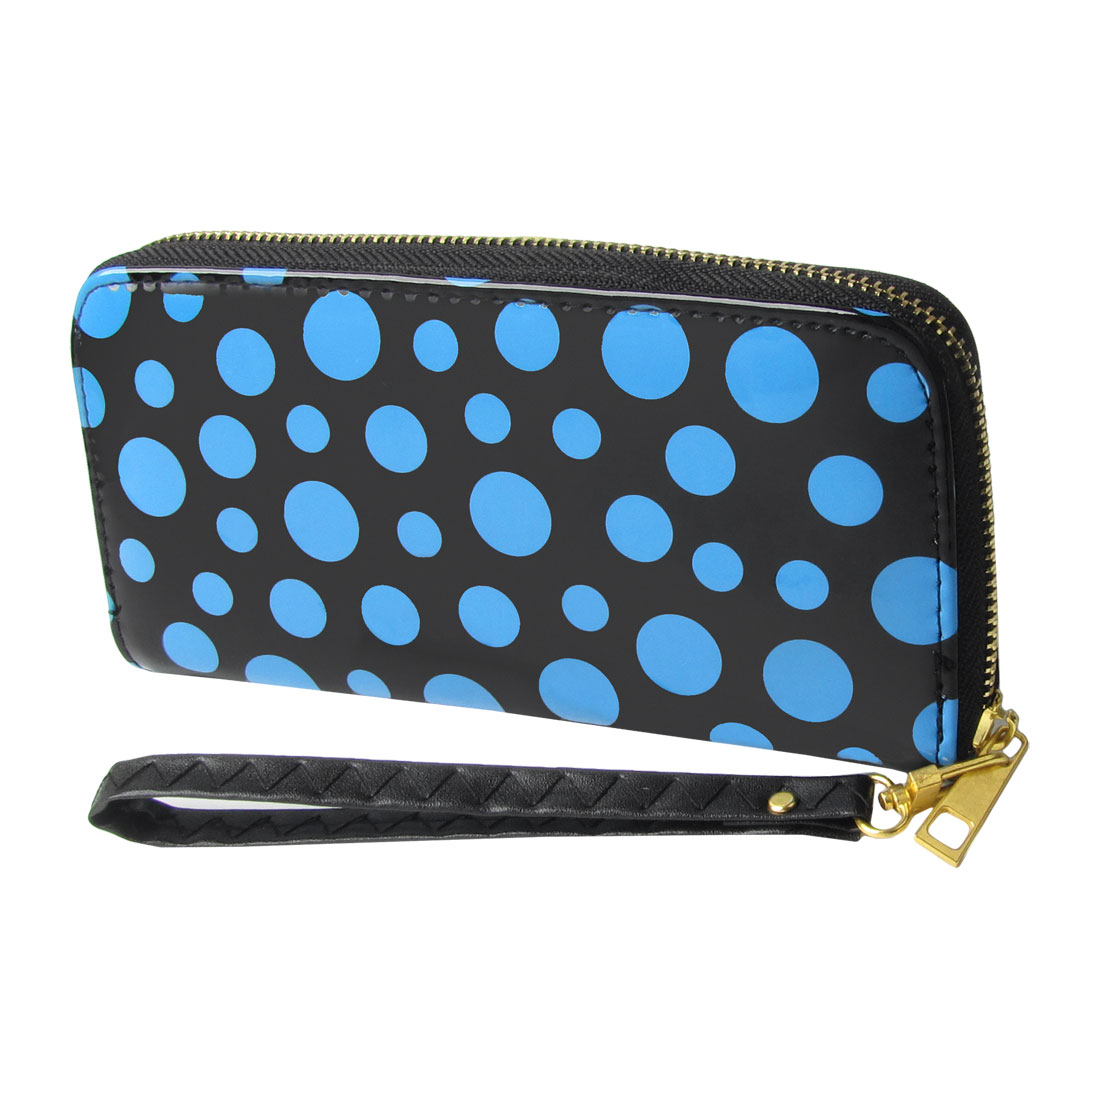 Lady Blue Dot Pattern Zipper Closure Organizer Wallet Holder Black